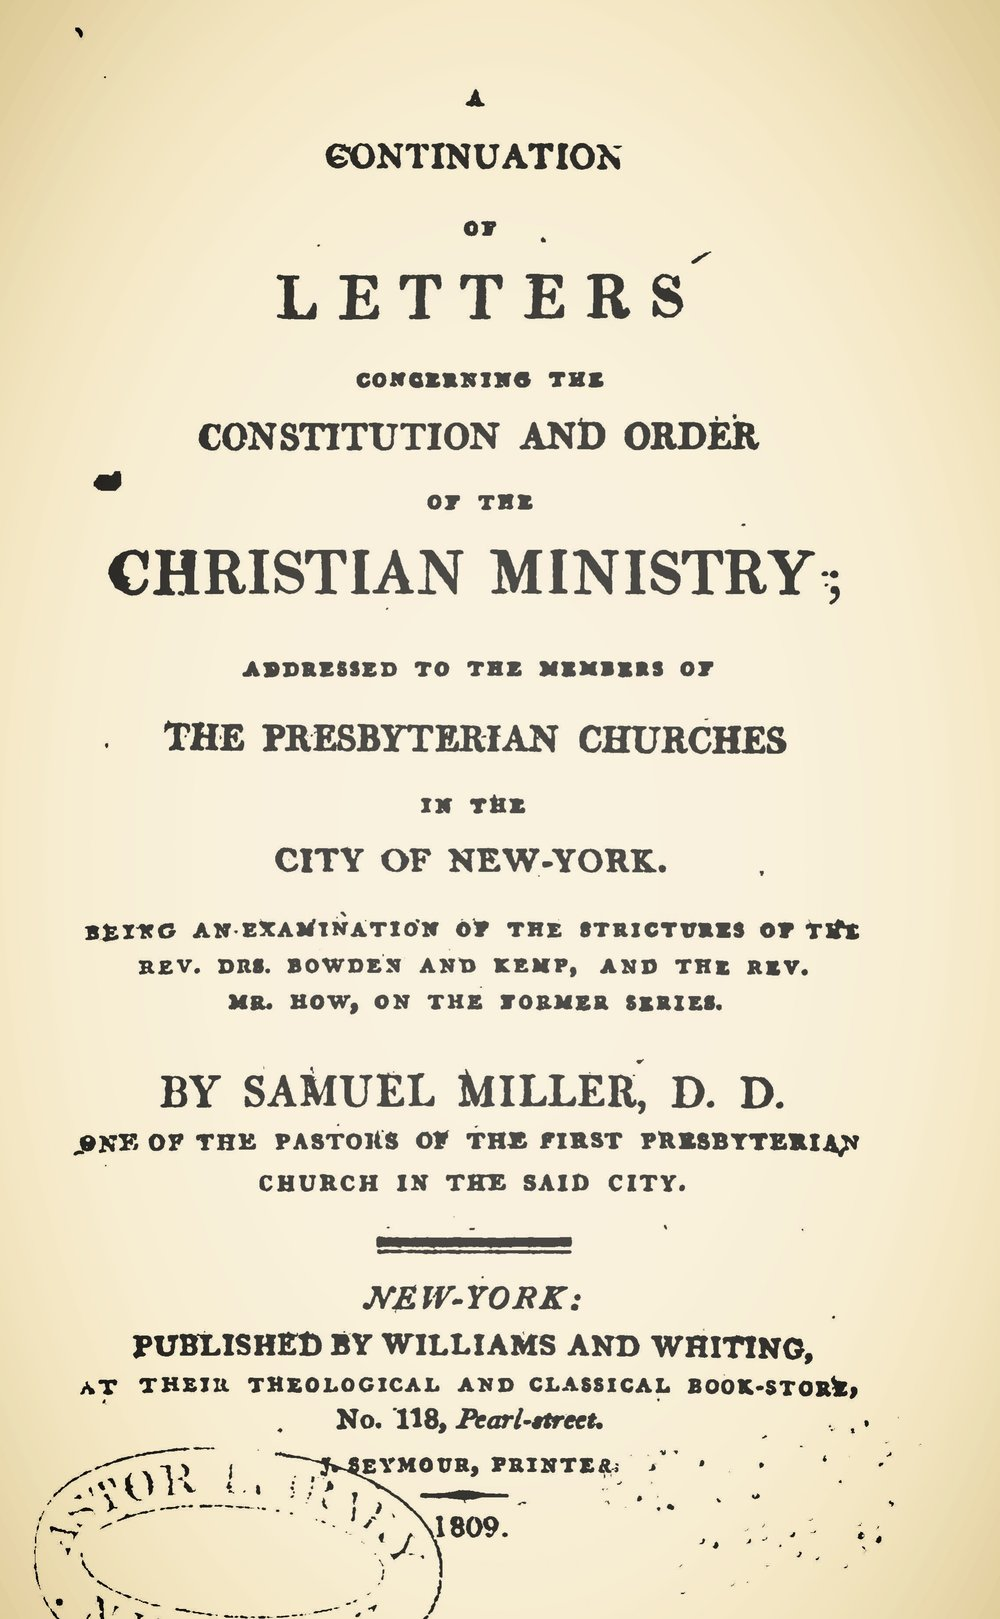 Miller, Samuel, A Continuation of Letters Concerning the Constitution and Order of the Christian Ministry Title Page.jpg